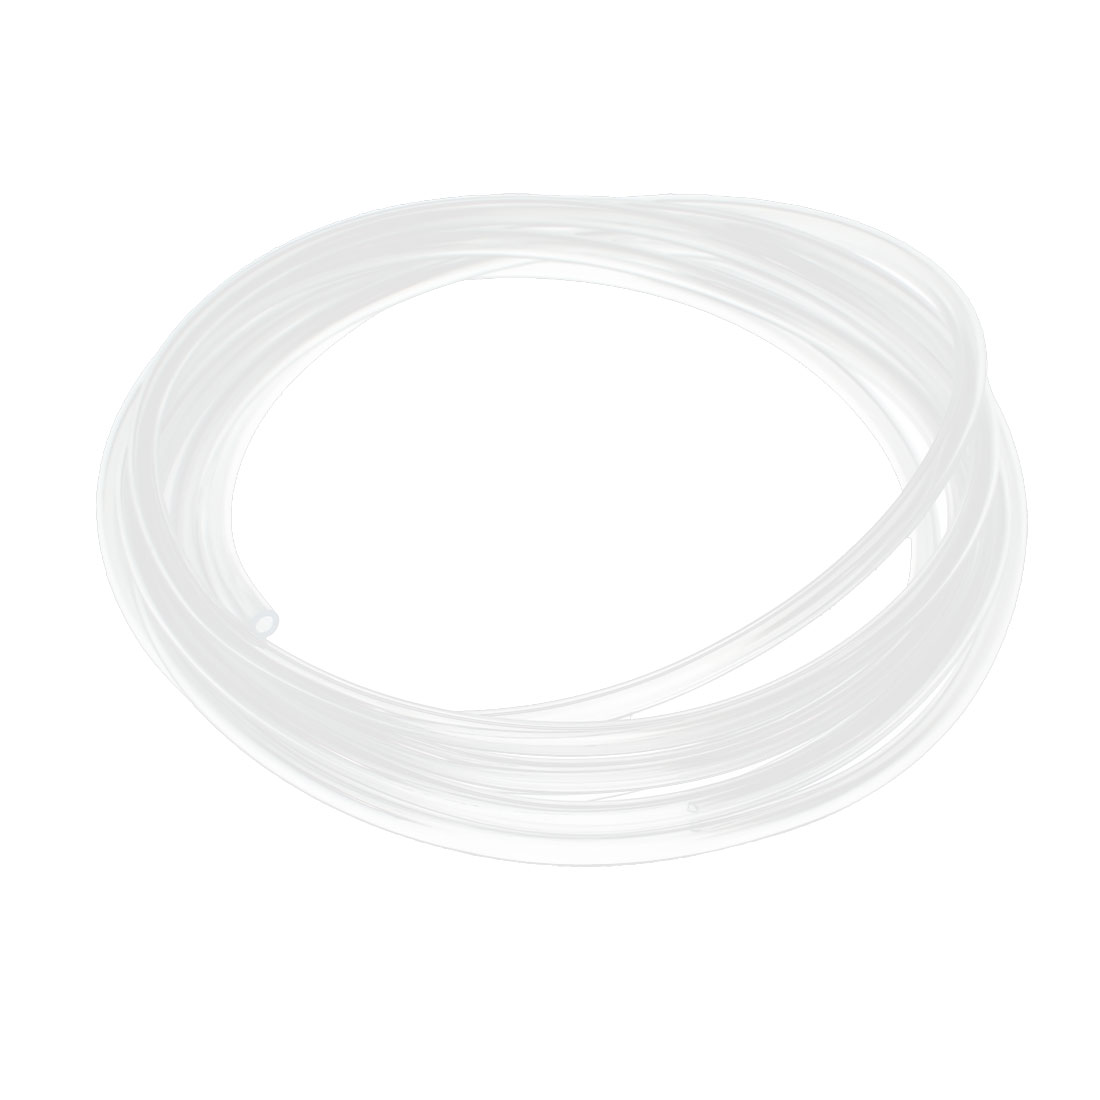 4mm x 2.5mm Pneumatic Air Compressor Tubing PU Hose Tube Pipe 2.5 meter Clear